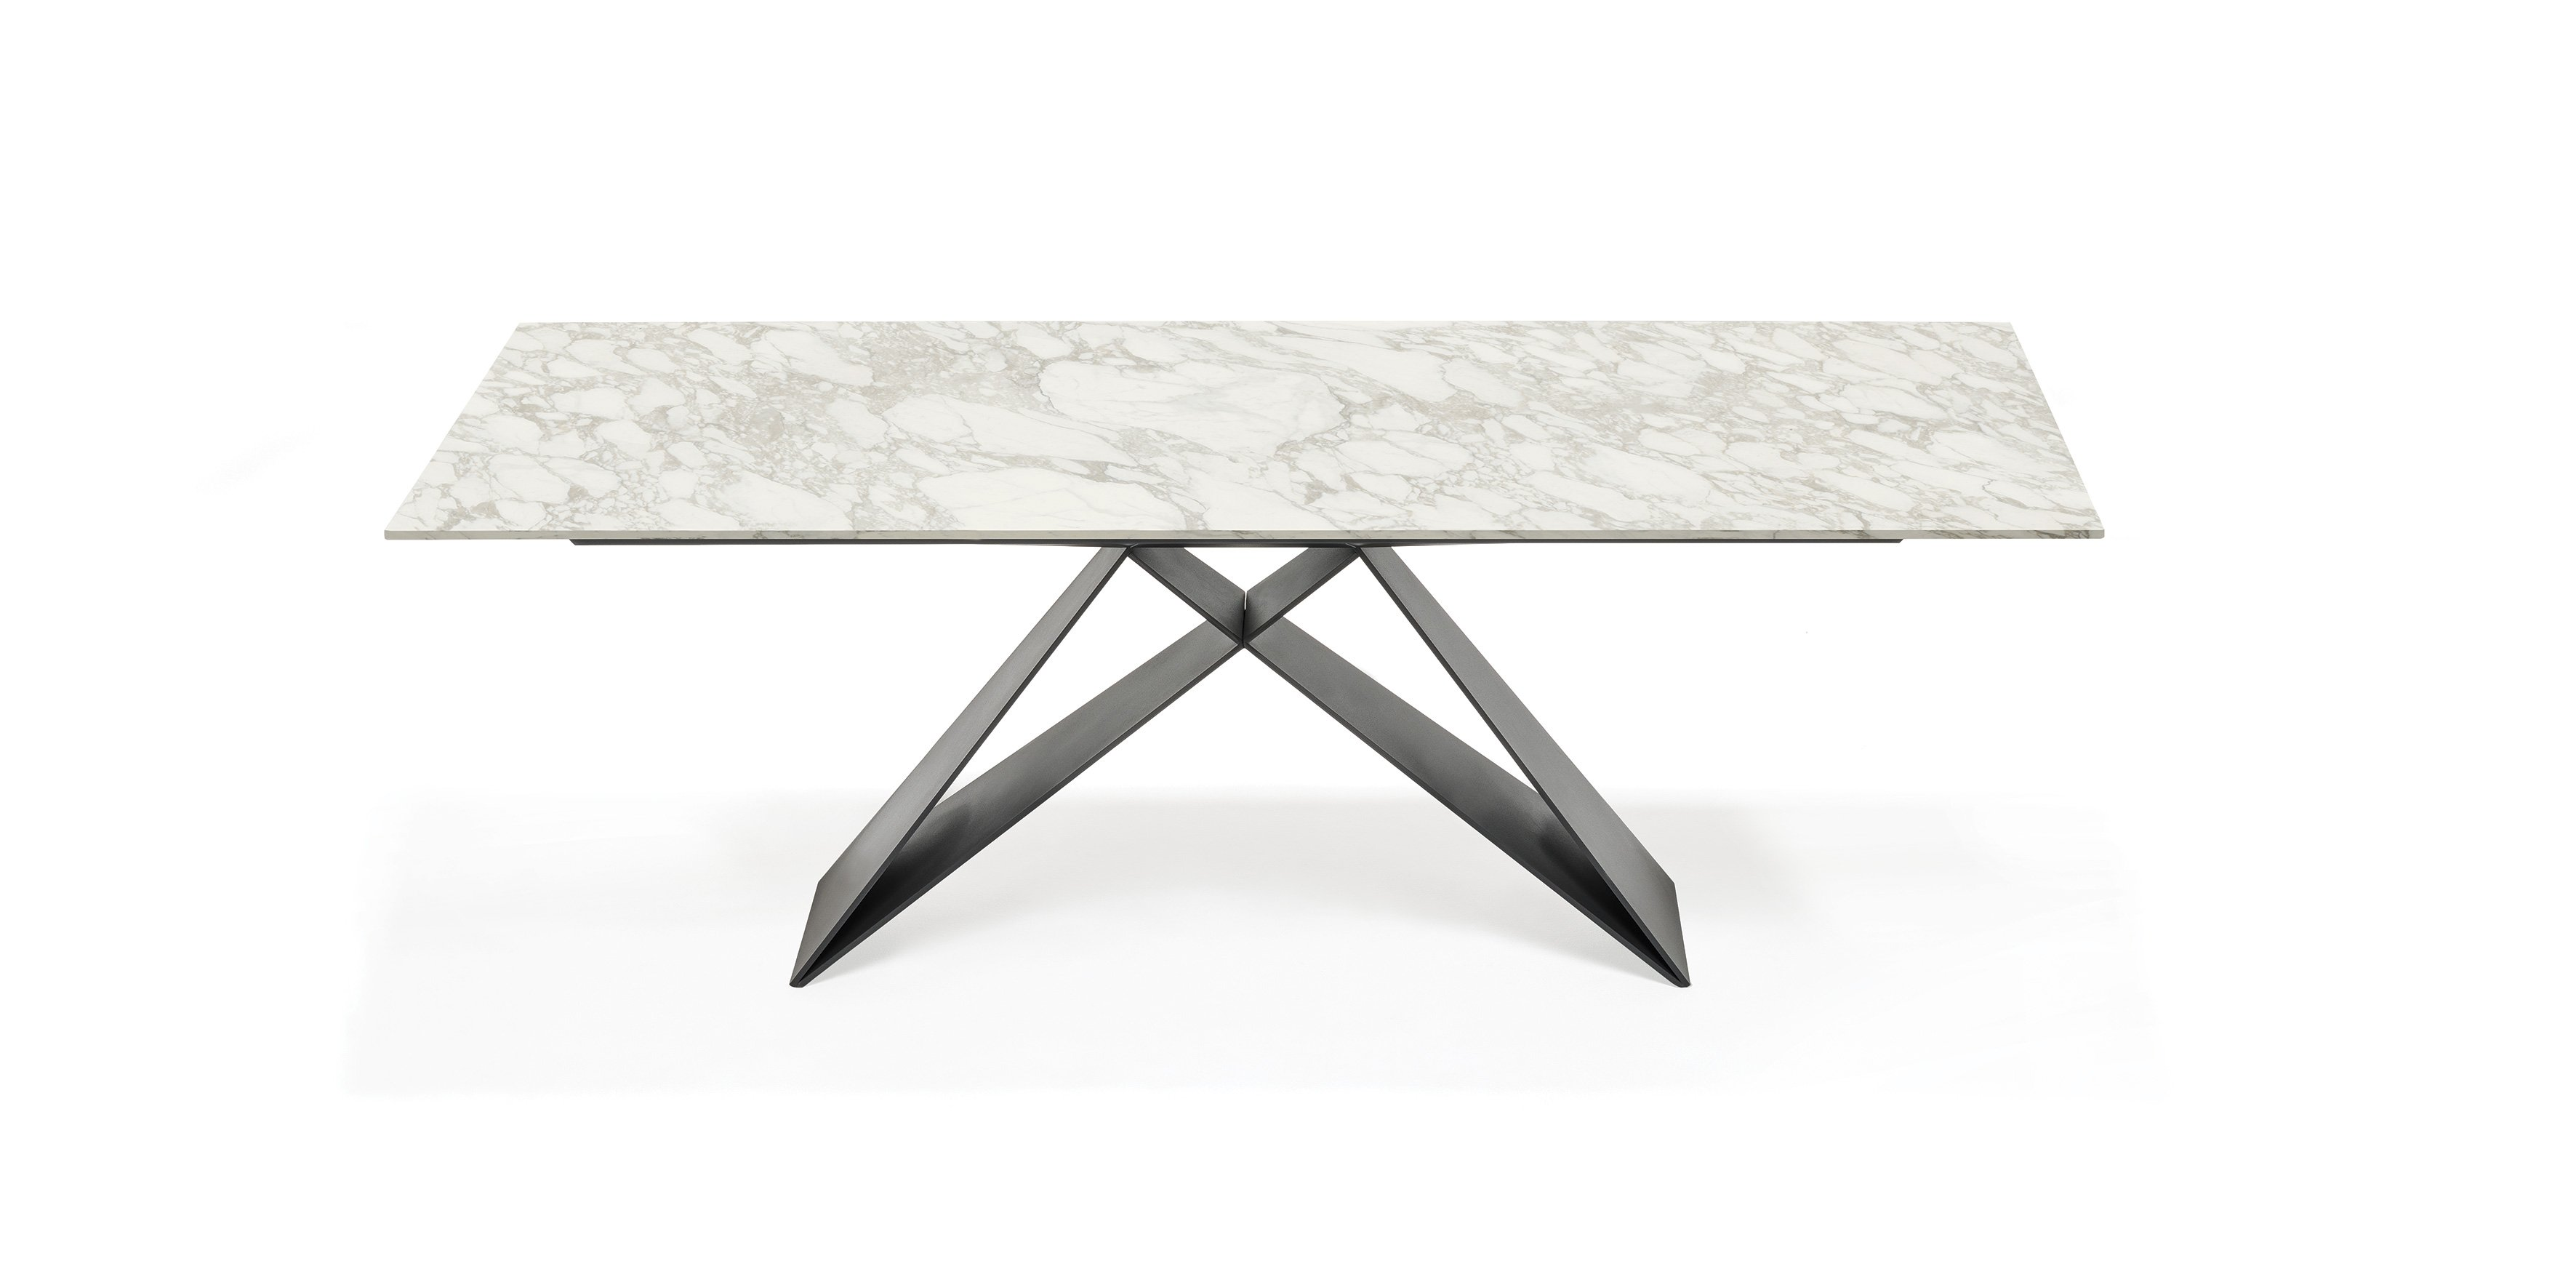 Premier Marble Dining Table from Cattelan Italia